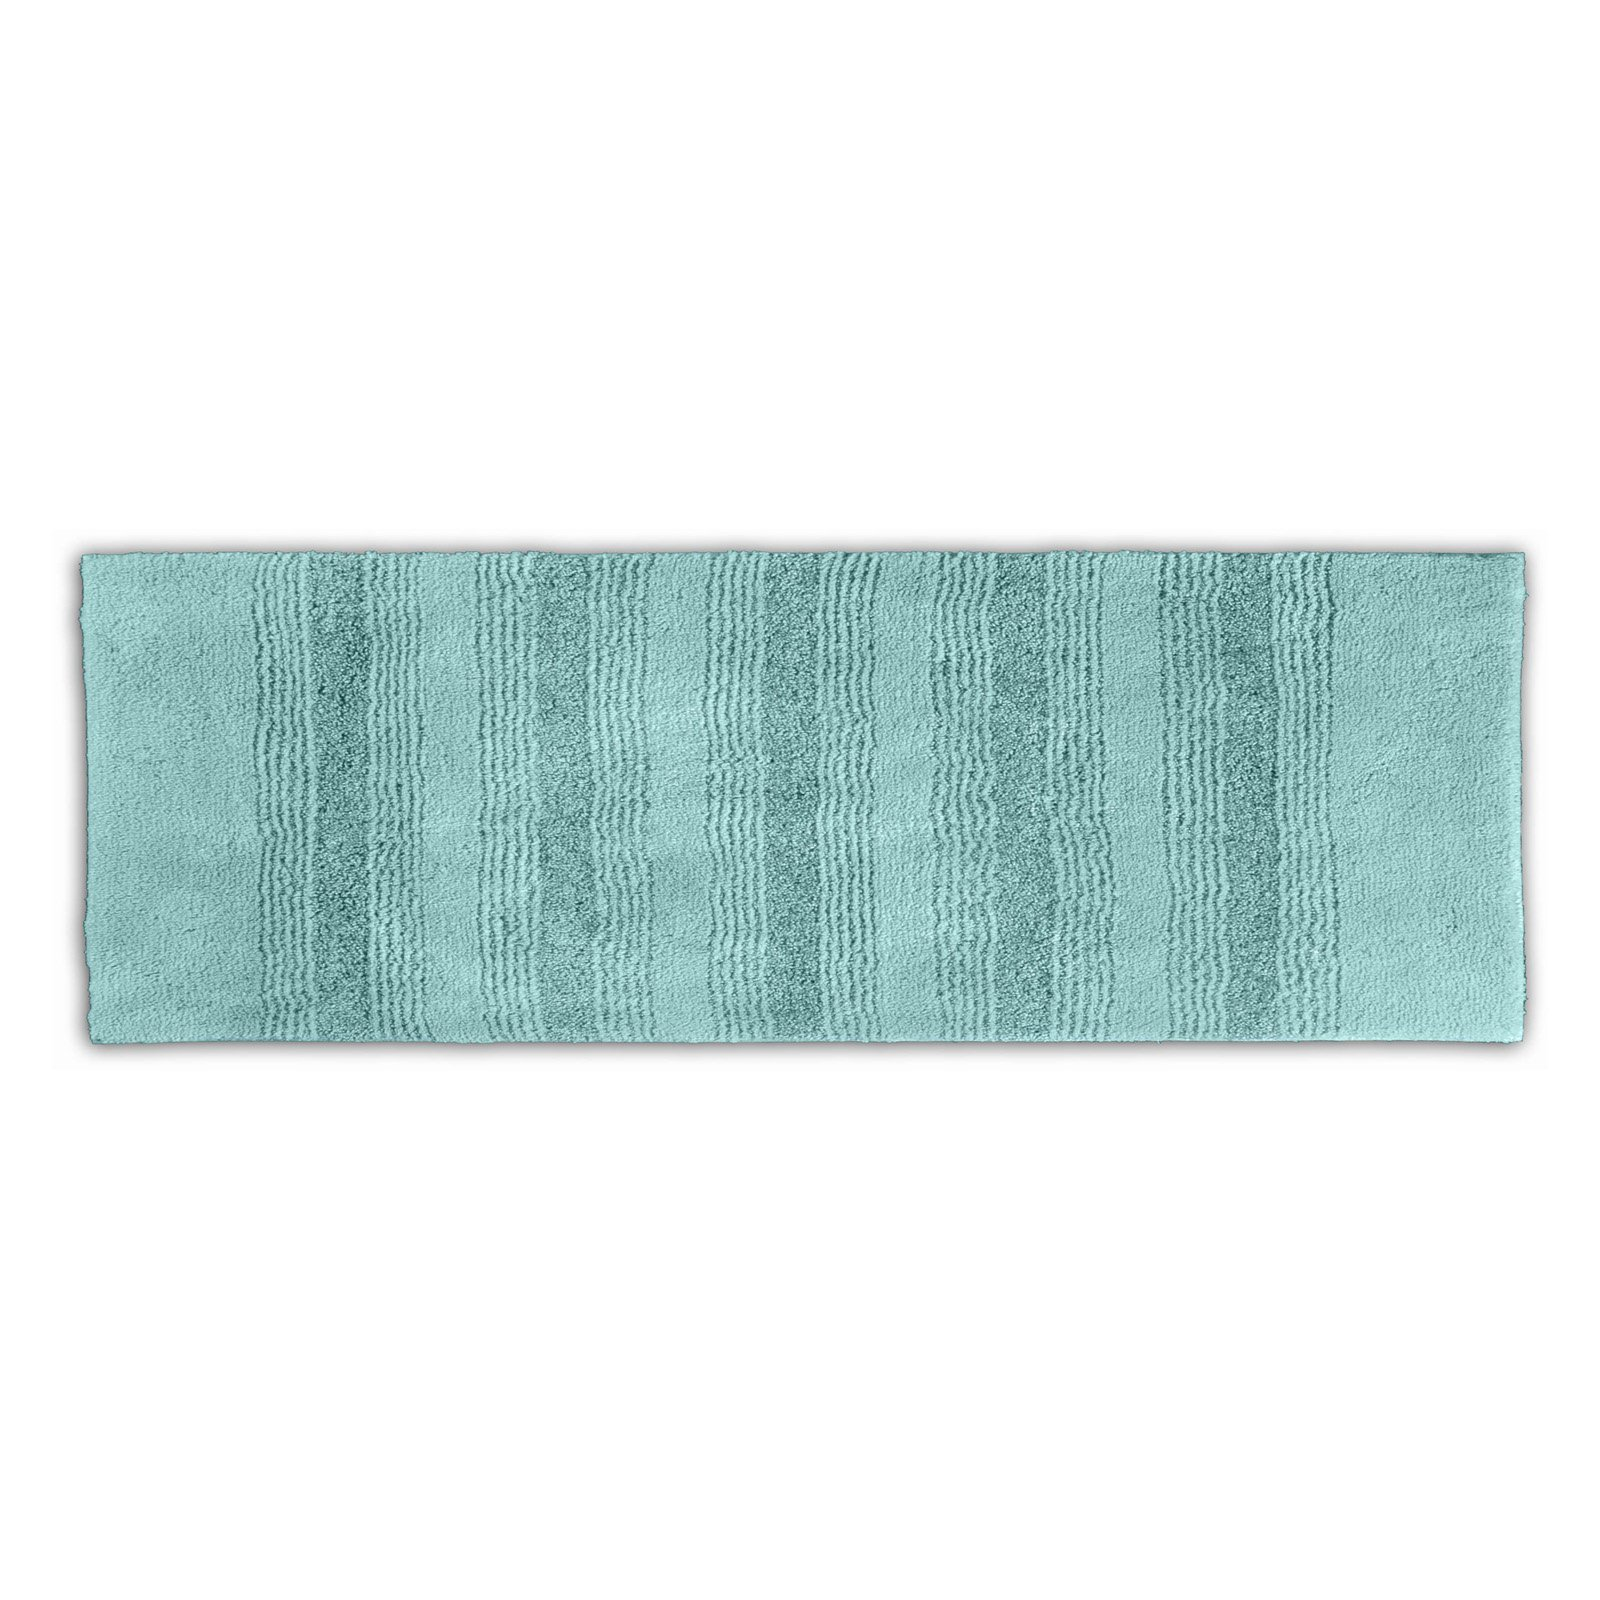 Enclave 22 x 60 in. Bath Rug by Garland Sales Inc